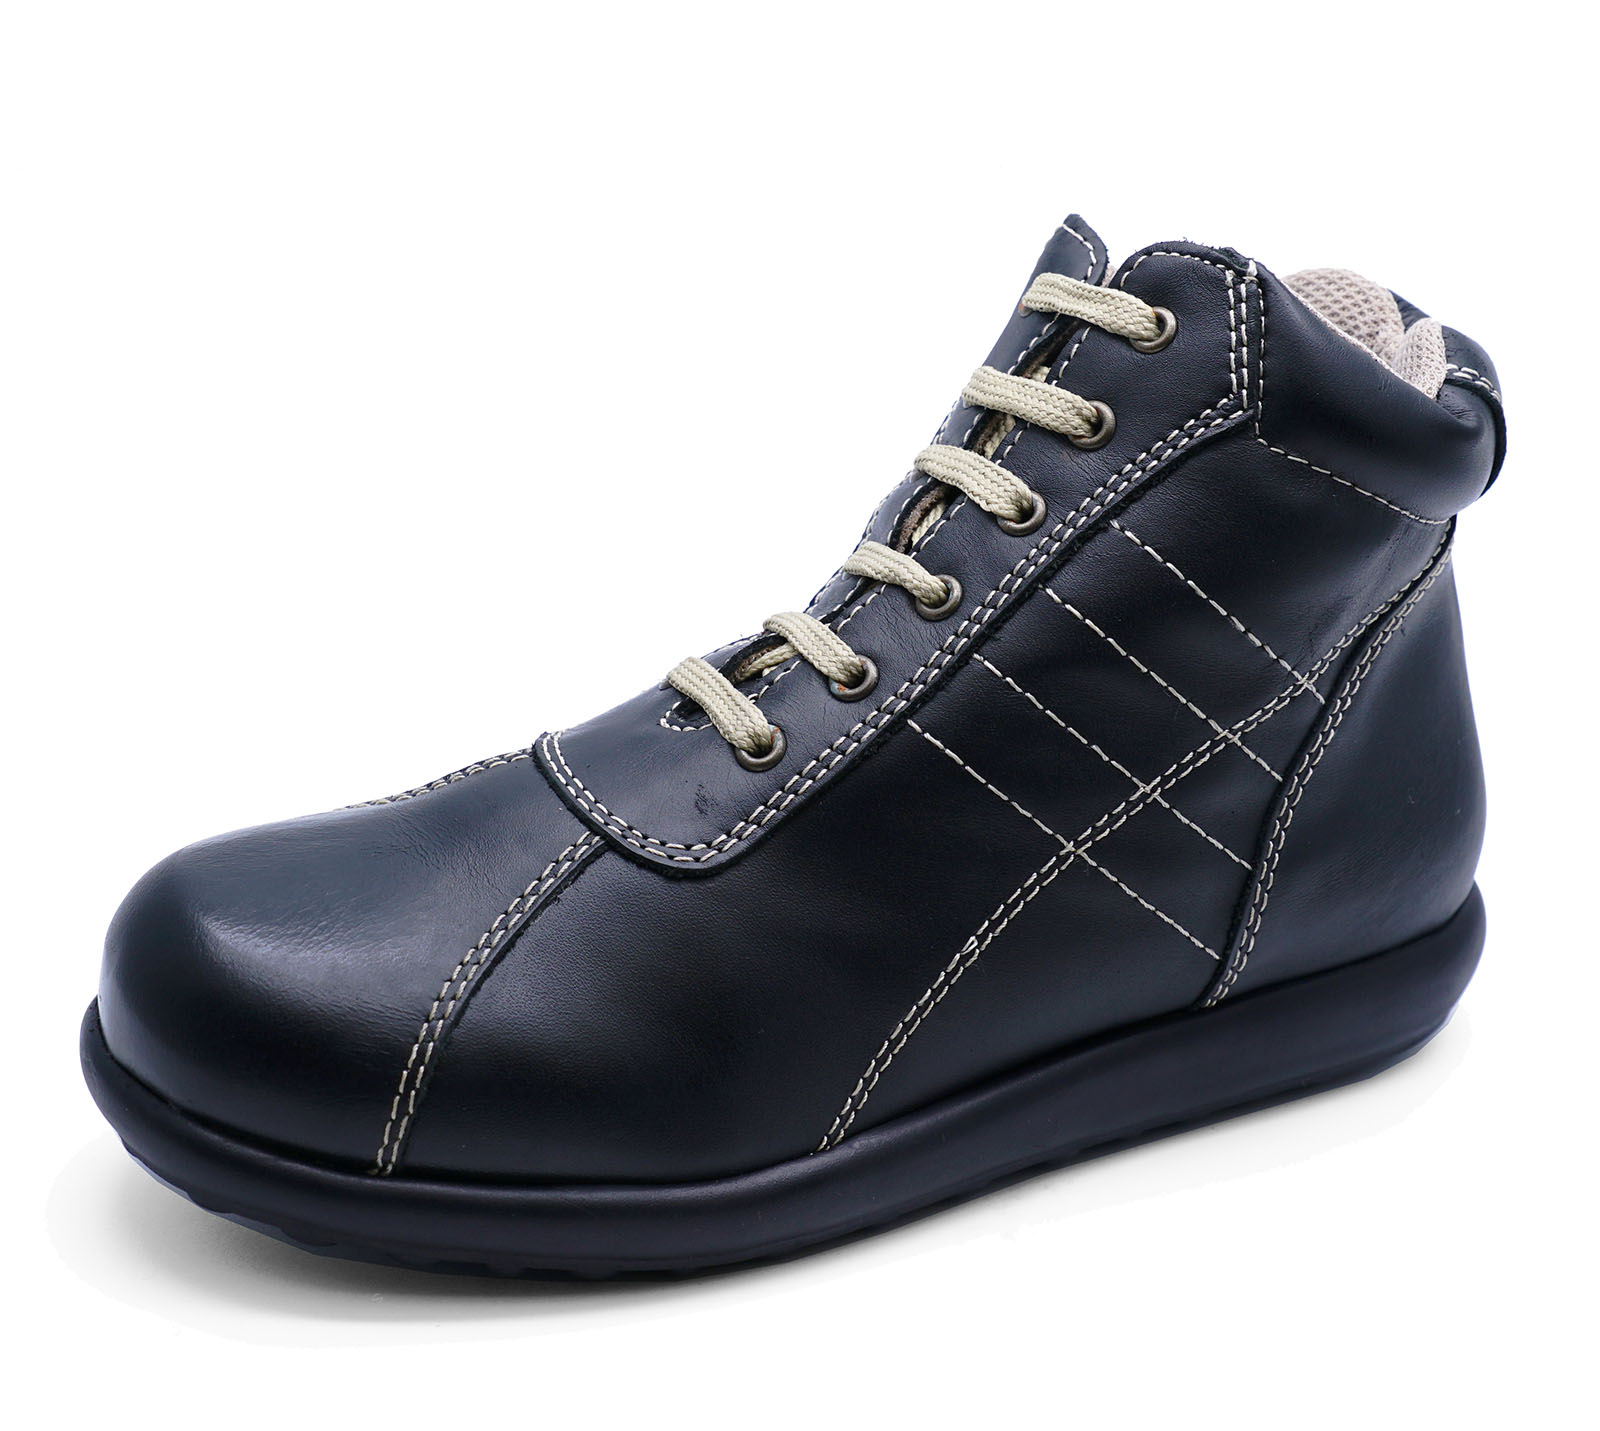 6d5e71b91bc LADIES FLAT BLACK REAL LEATHER LACE-UP WALKING ANKLE HIKING BOOTS ...